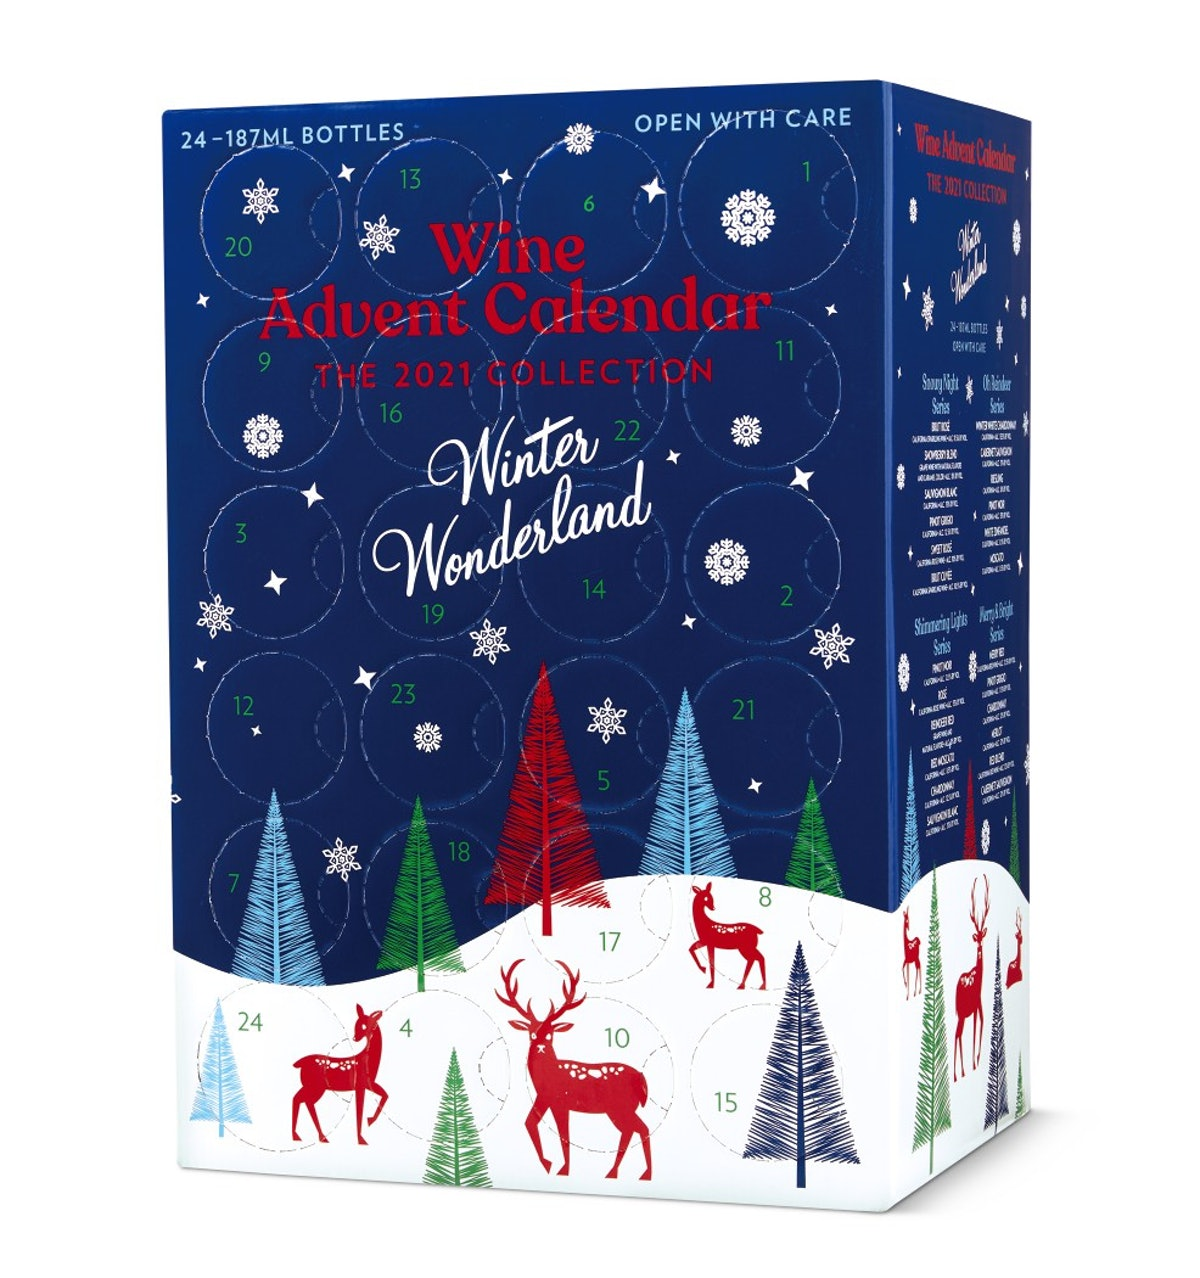 Here's everything to know about Aldi's 2021 Wine Advent calendar's price, release date, and more.